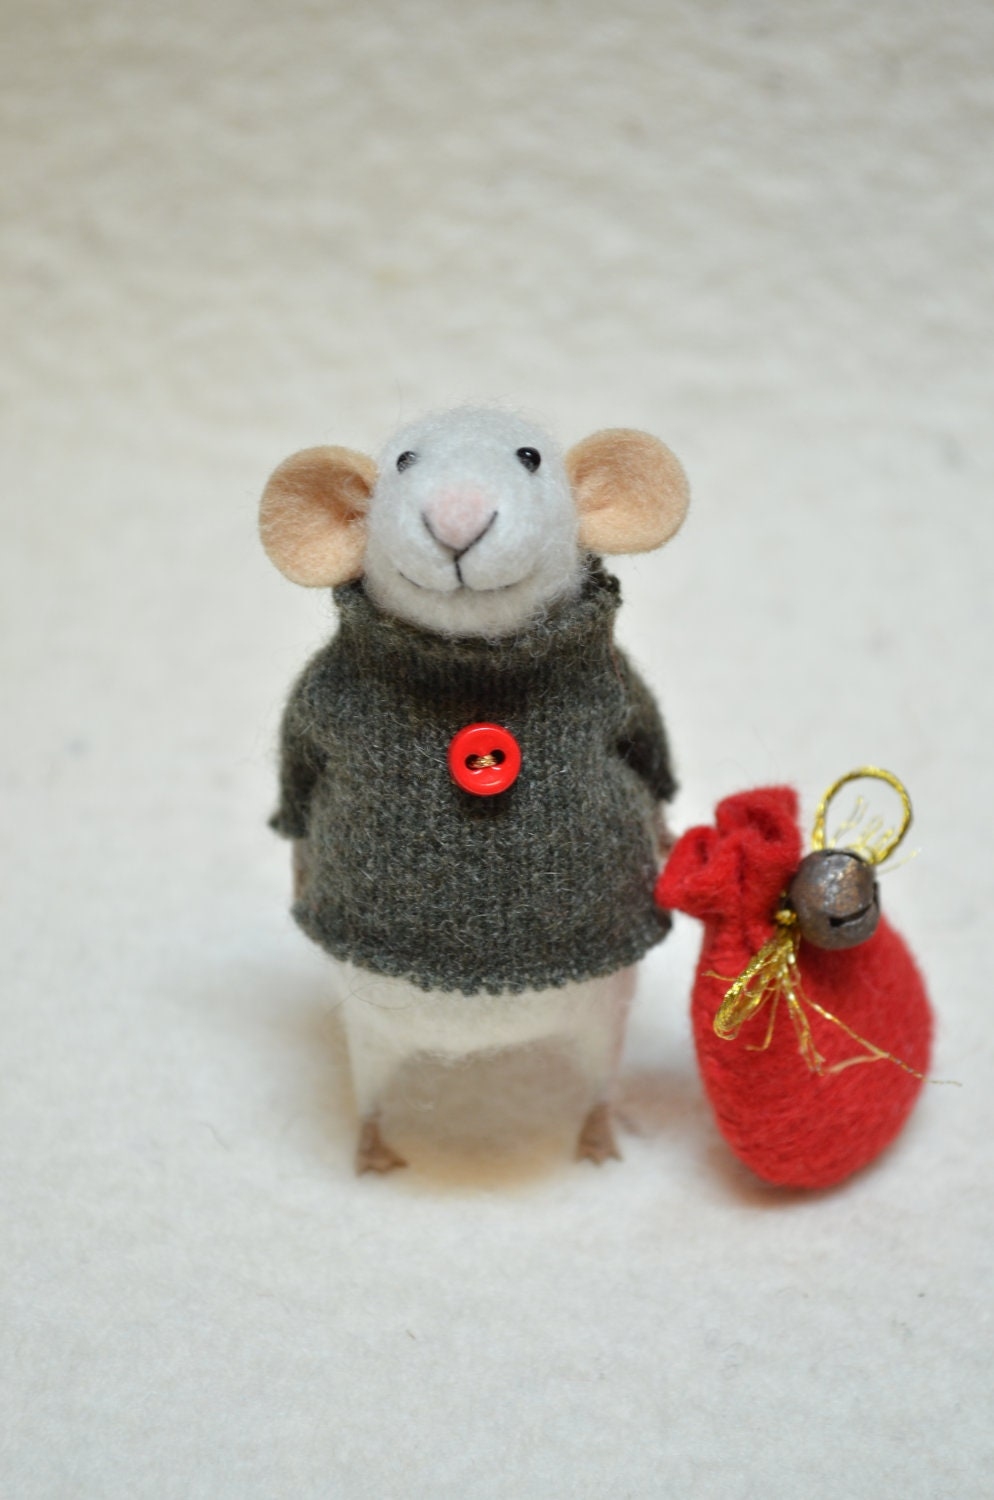 CHRISTMAS MOUSE - unique - needle felted ornament animal, felting dreams made to order